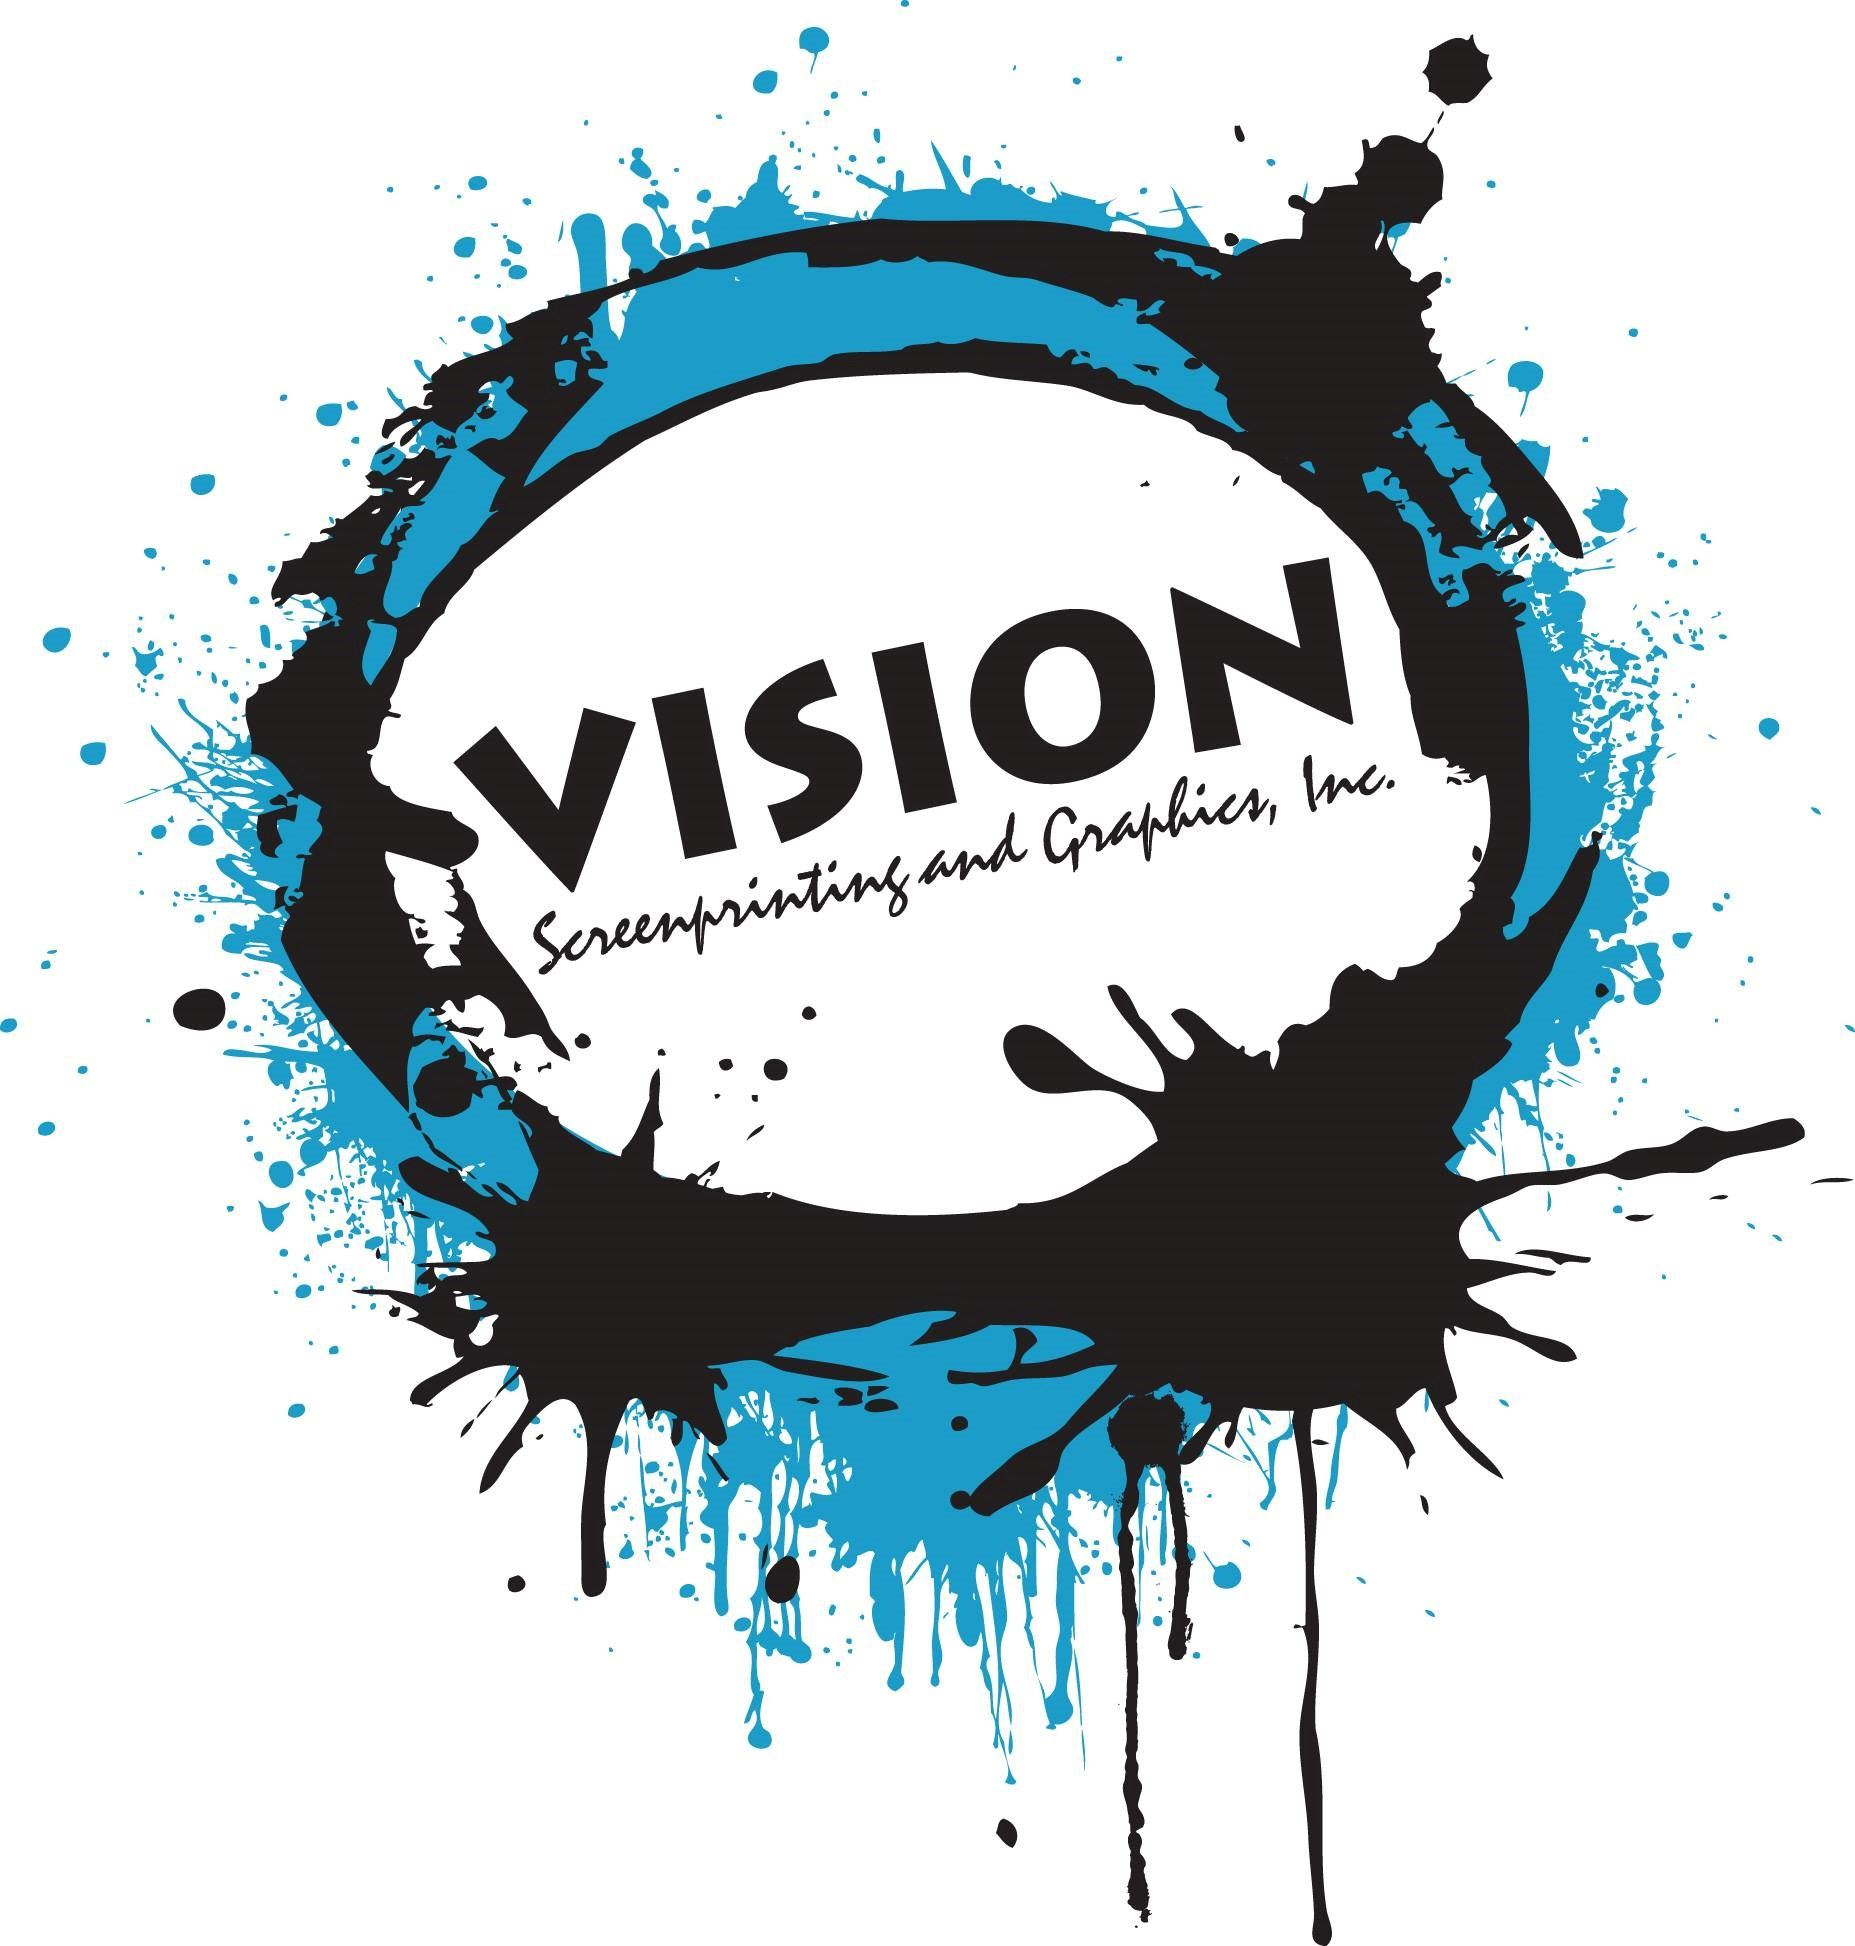 Vision Screenprinting and Graphics